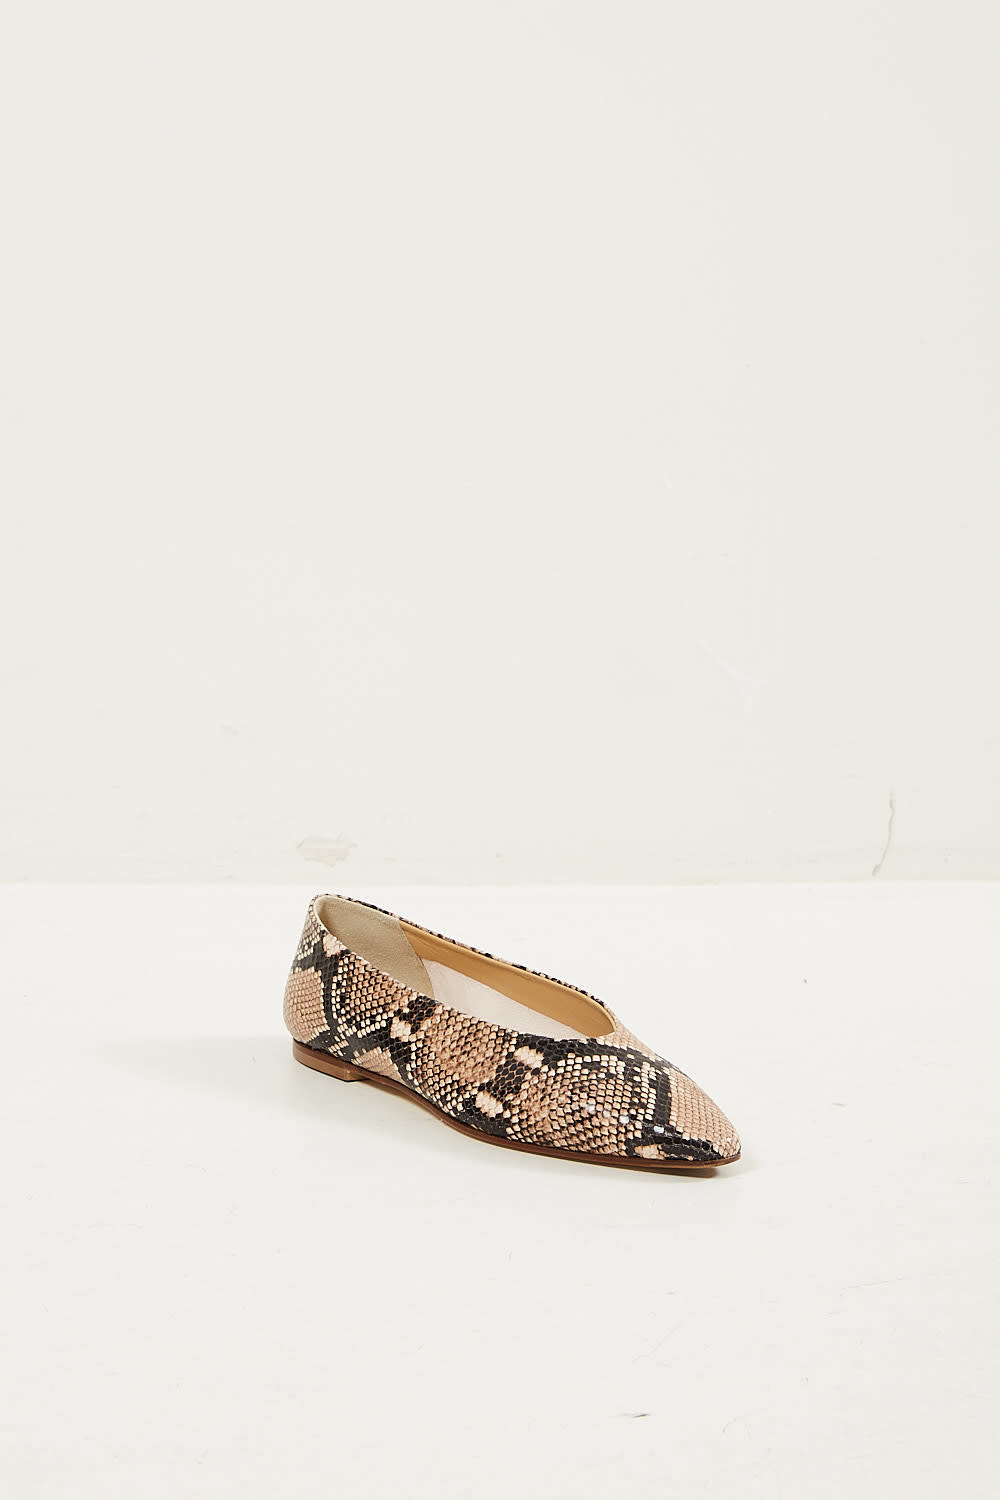 Aeyde Betty snake print calf leather flats